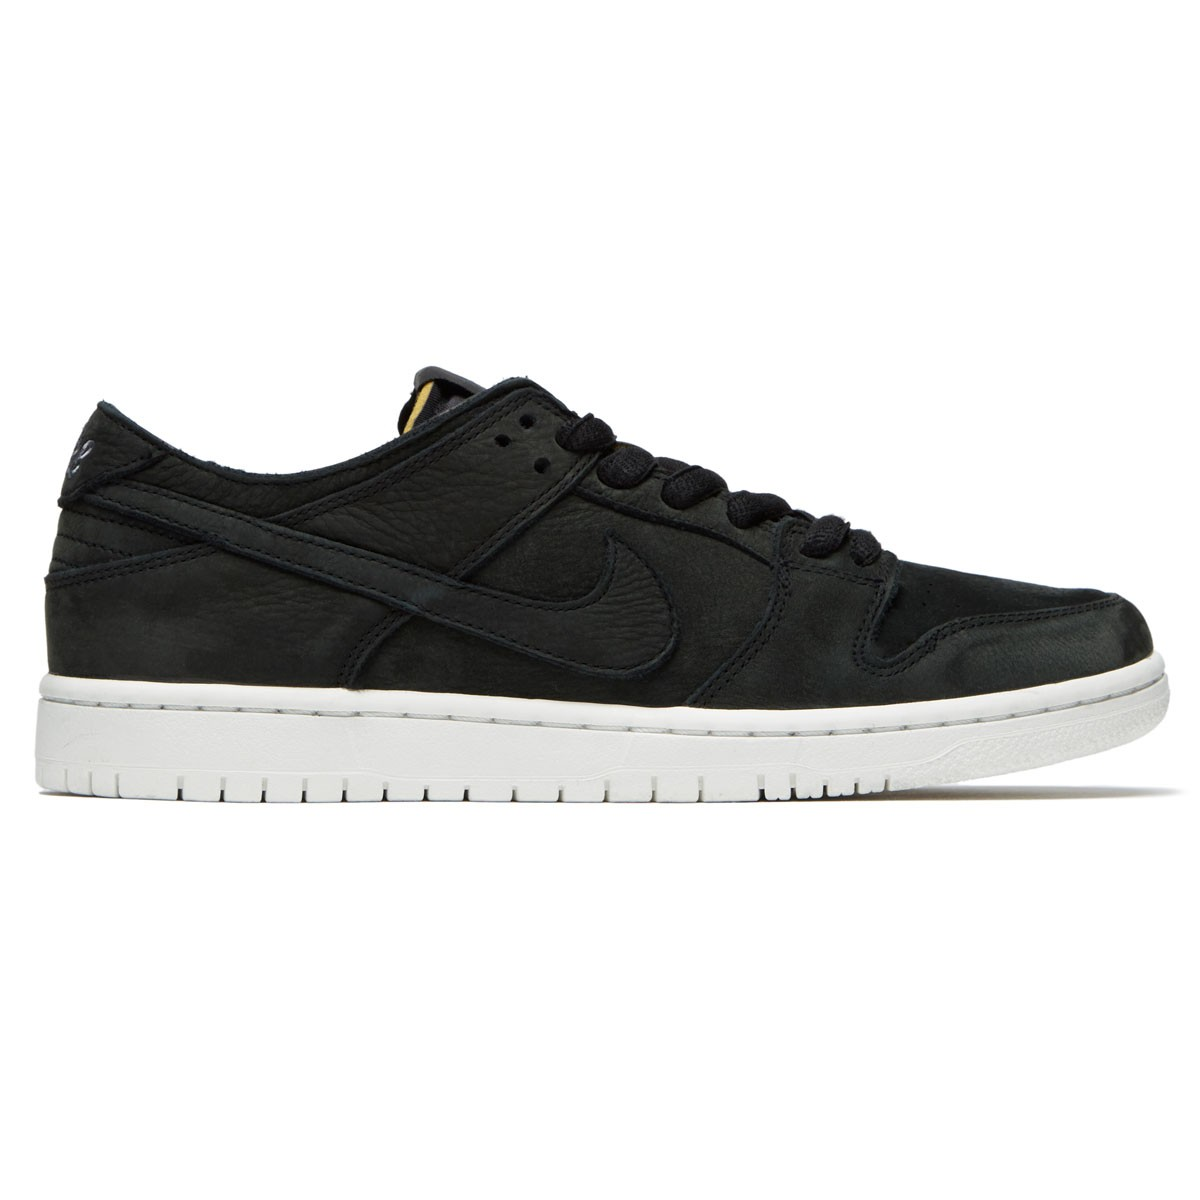 Nike SB Zoom Dunk Low Pro Deconstruct Shoes - Black/Summit White/Anthracite